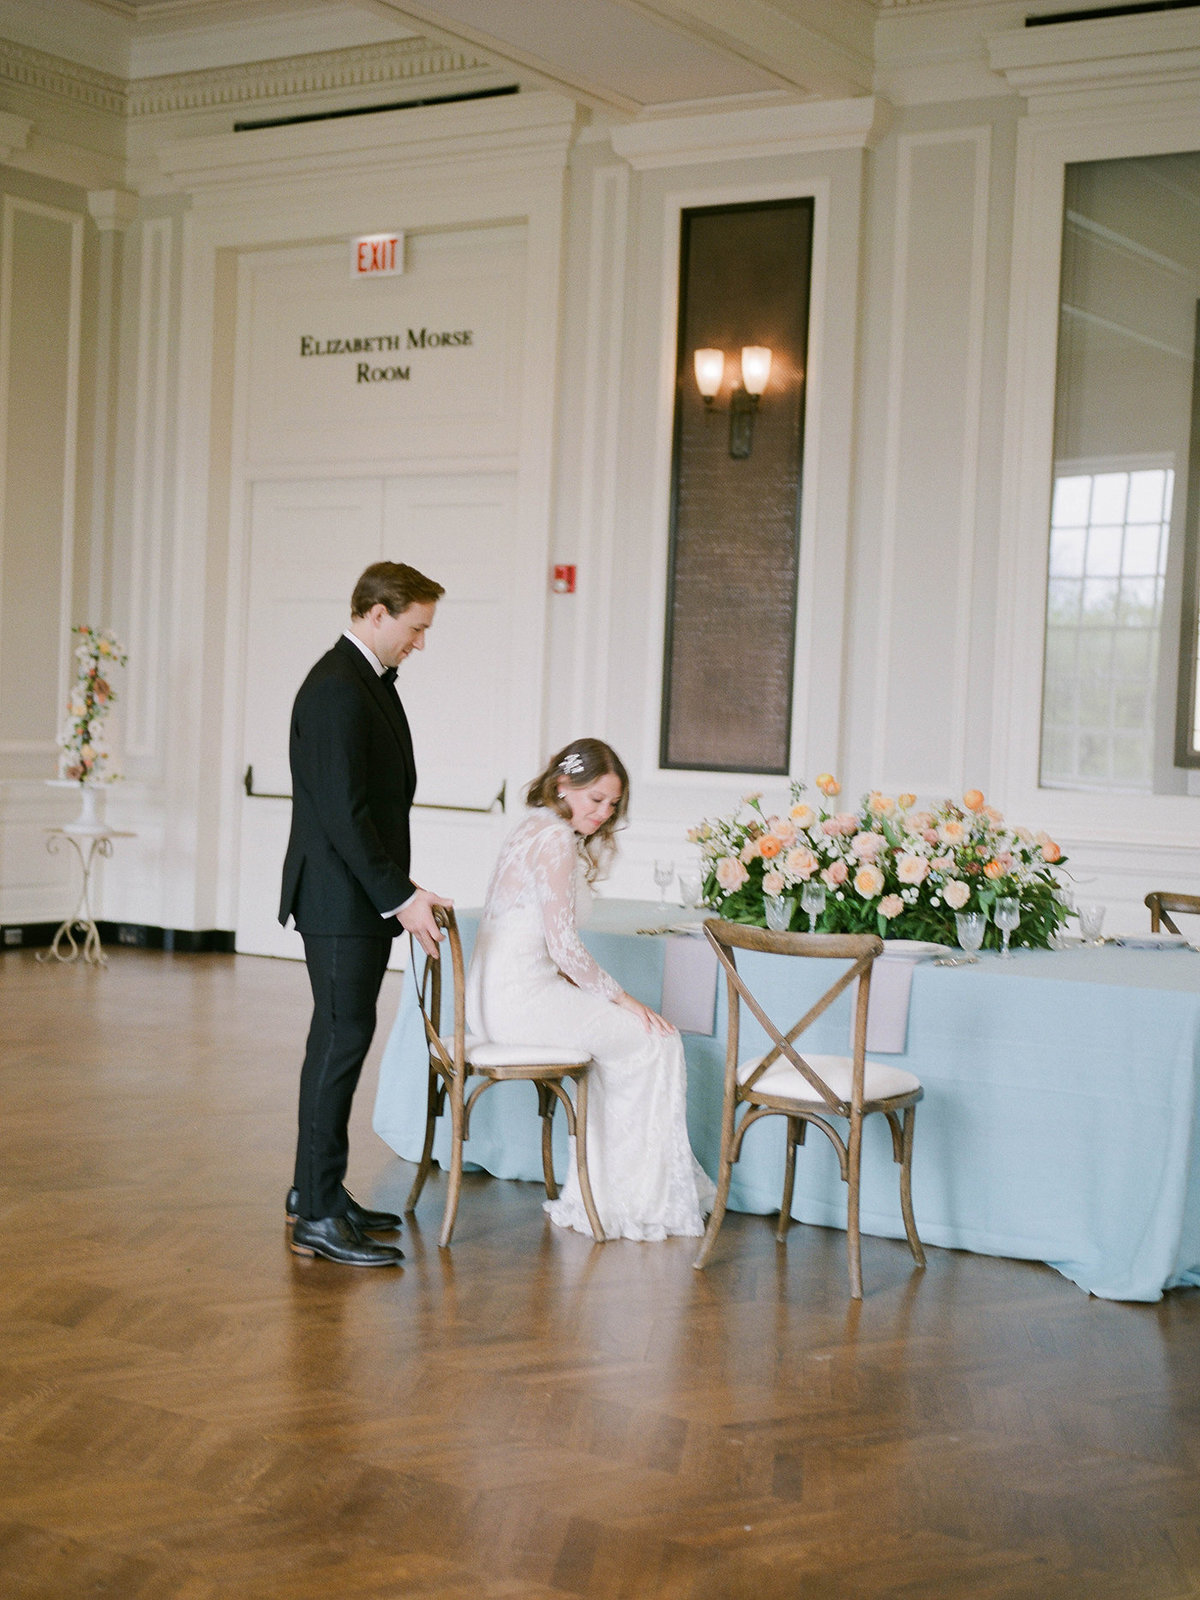 Chicago Wedding Photographer - Chicago History Museum - Sarah Sunstrom Photography - Fine Art Wedding Photographer - 18